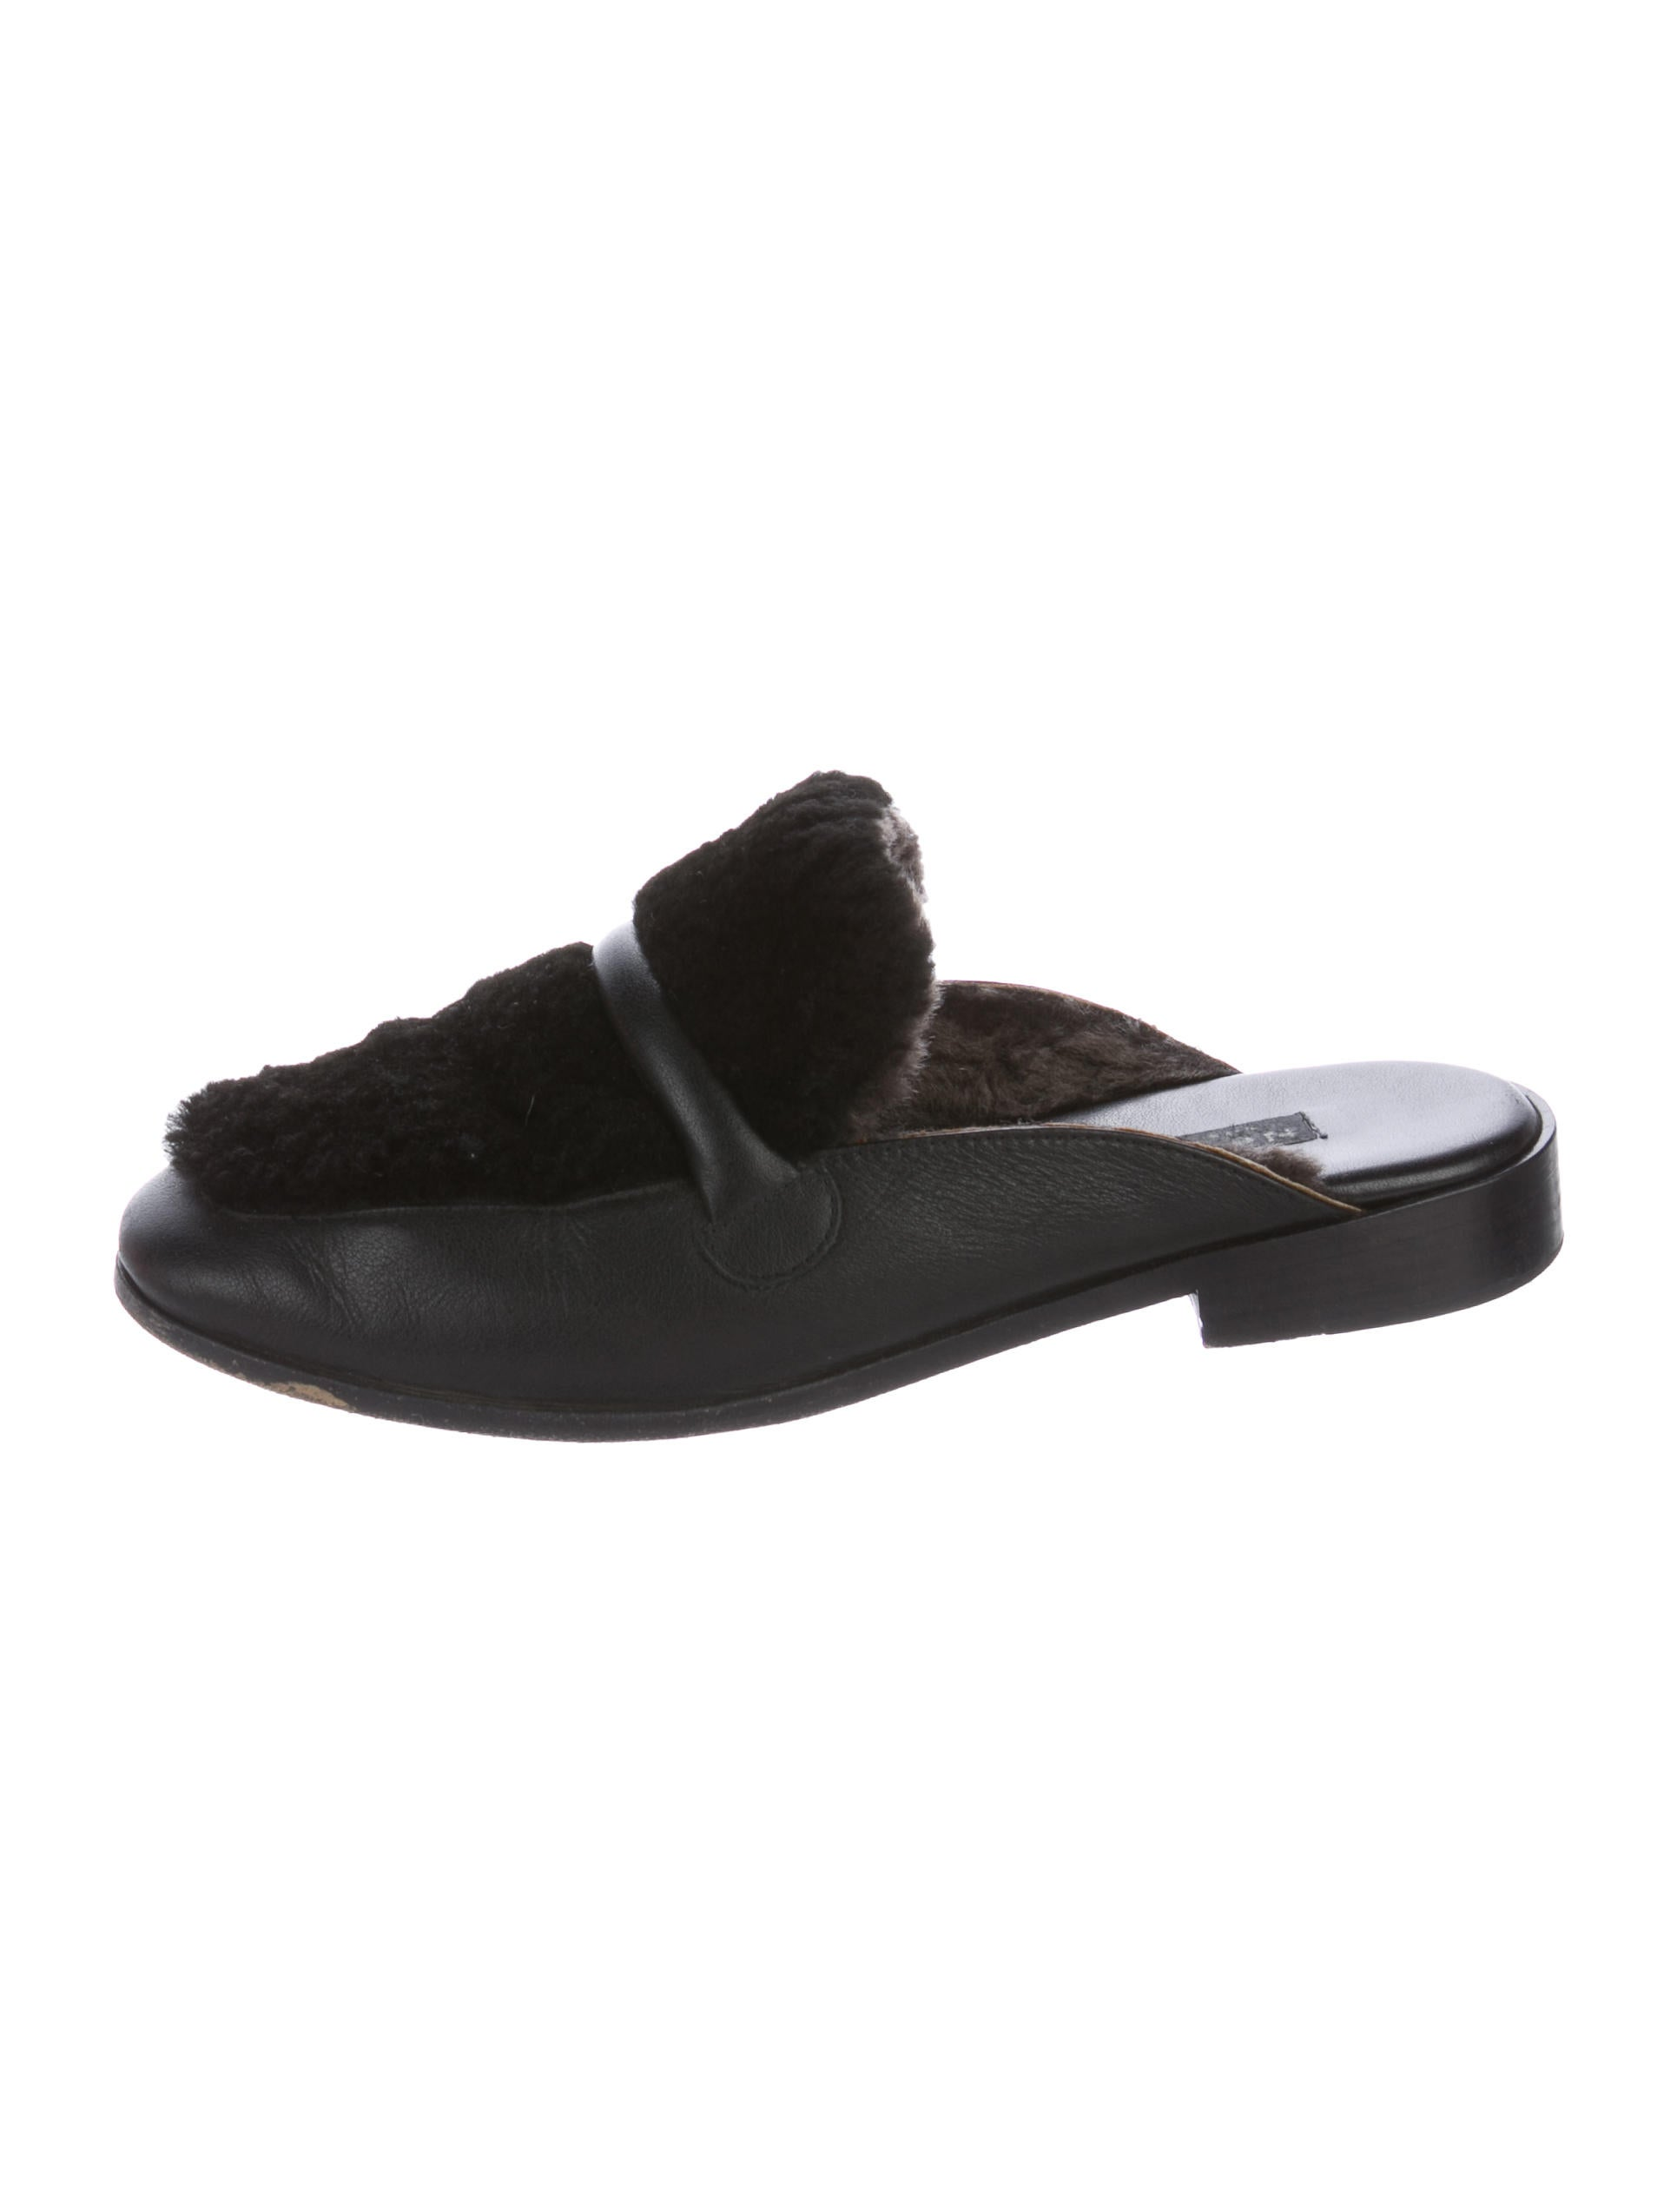 NewbarK Shearling-Lined Leather Mules sale cheapest price Bz53hEzPG